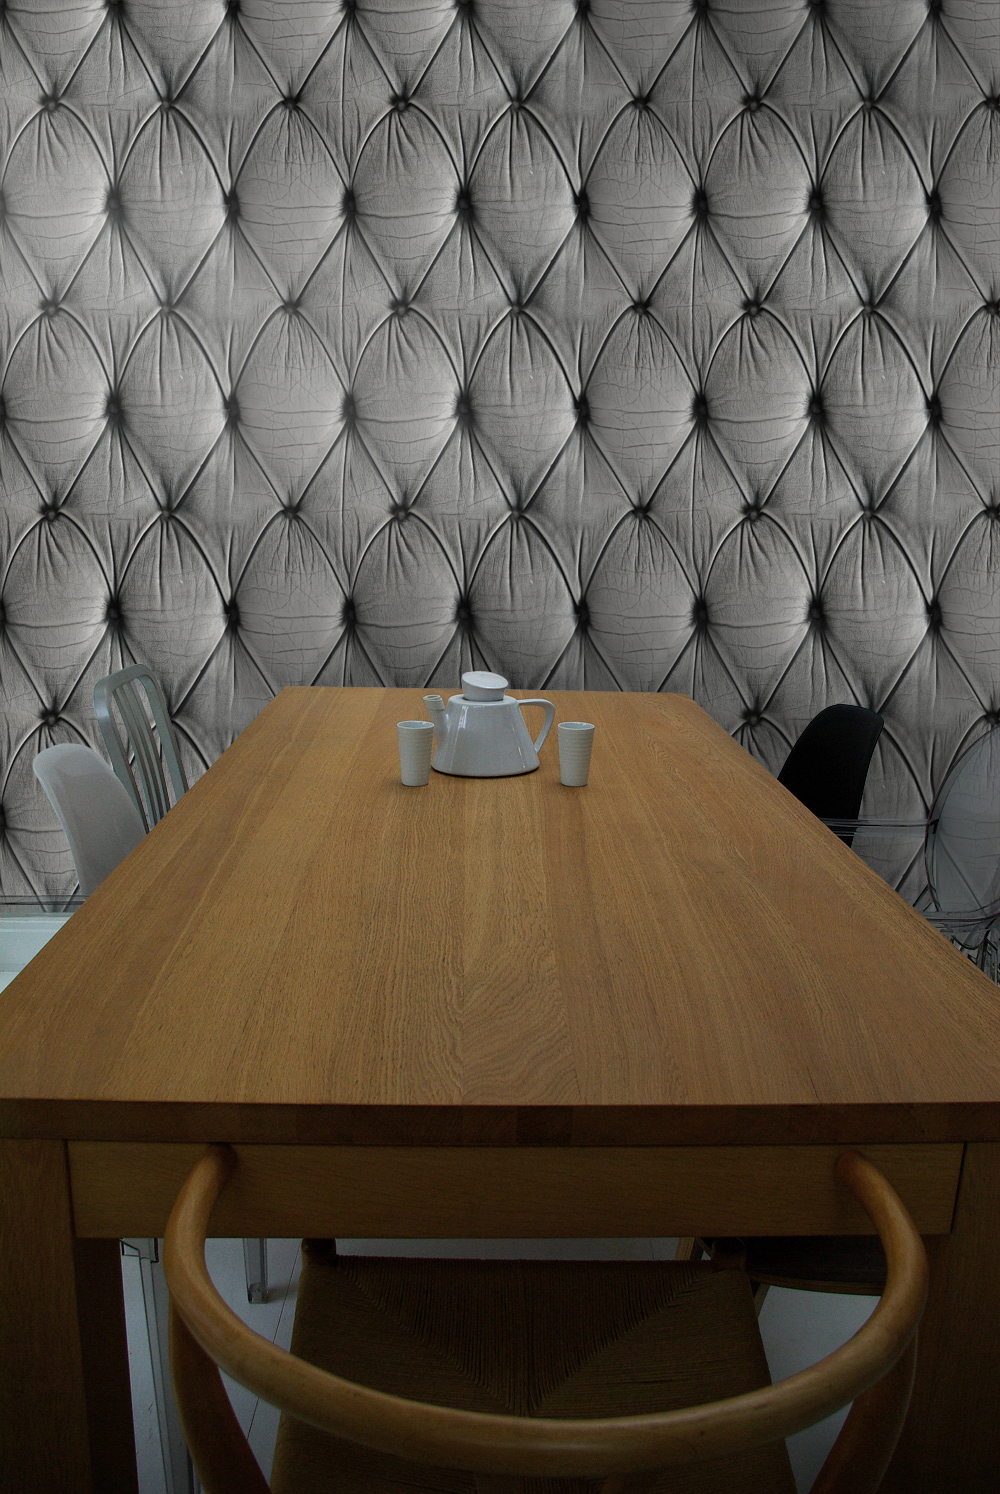 Leather self-adhesive wallpaper in living room